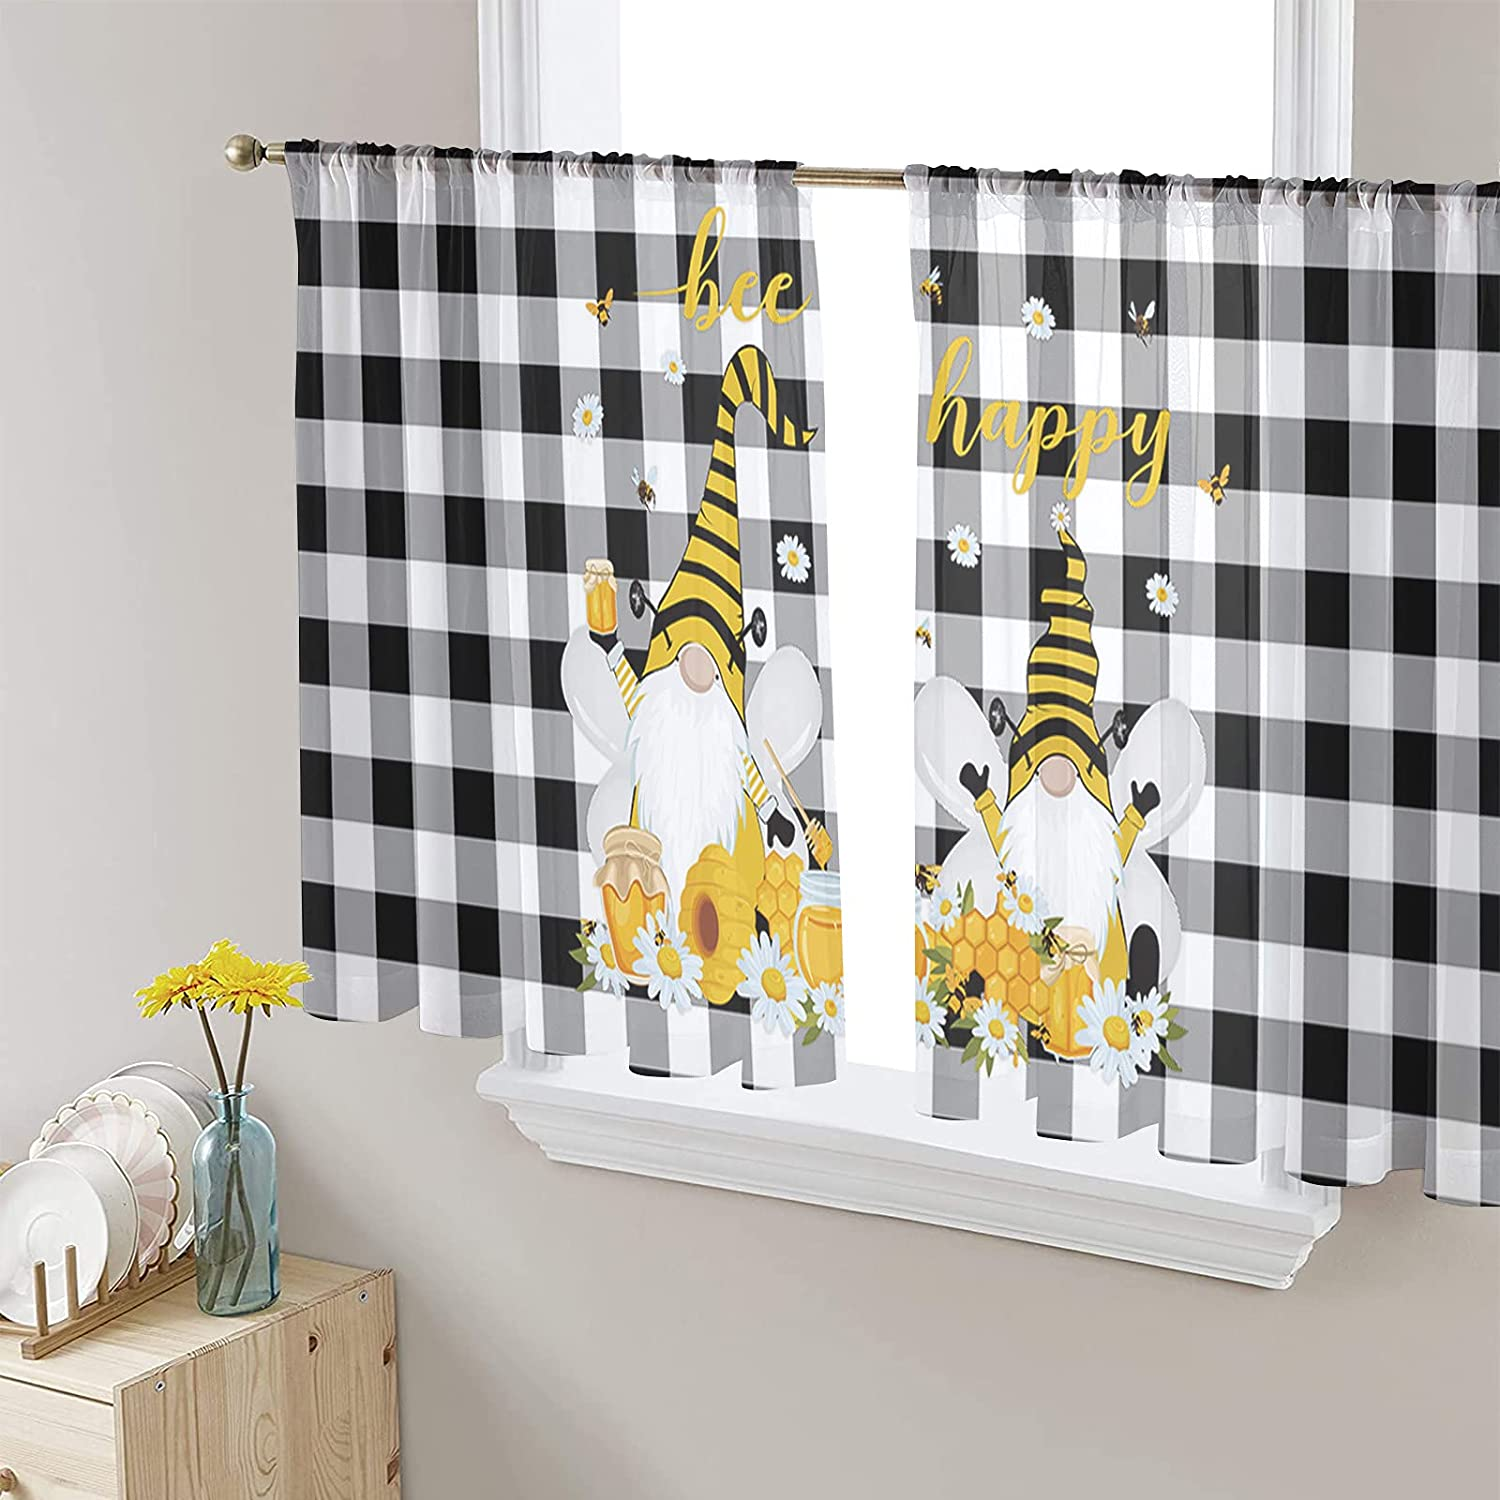 2 Panels Sheer Voile Rod Pocket Gnome Curtain Bombing New sales new work Yellow Bee Honey B